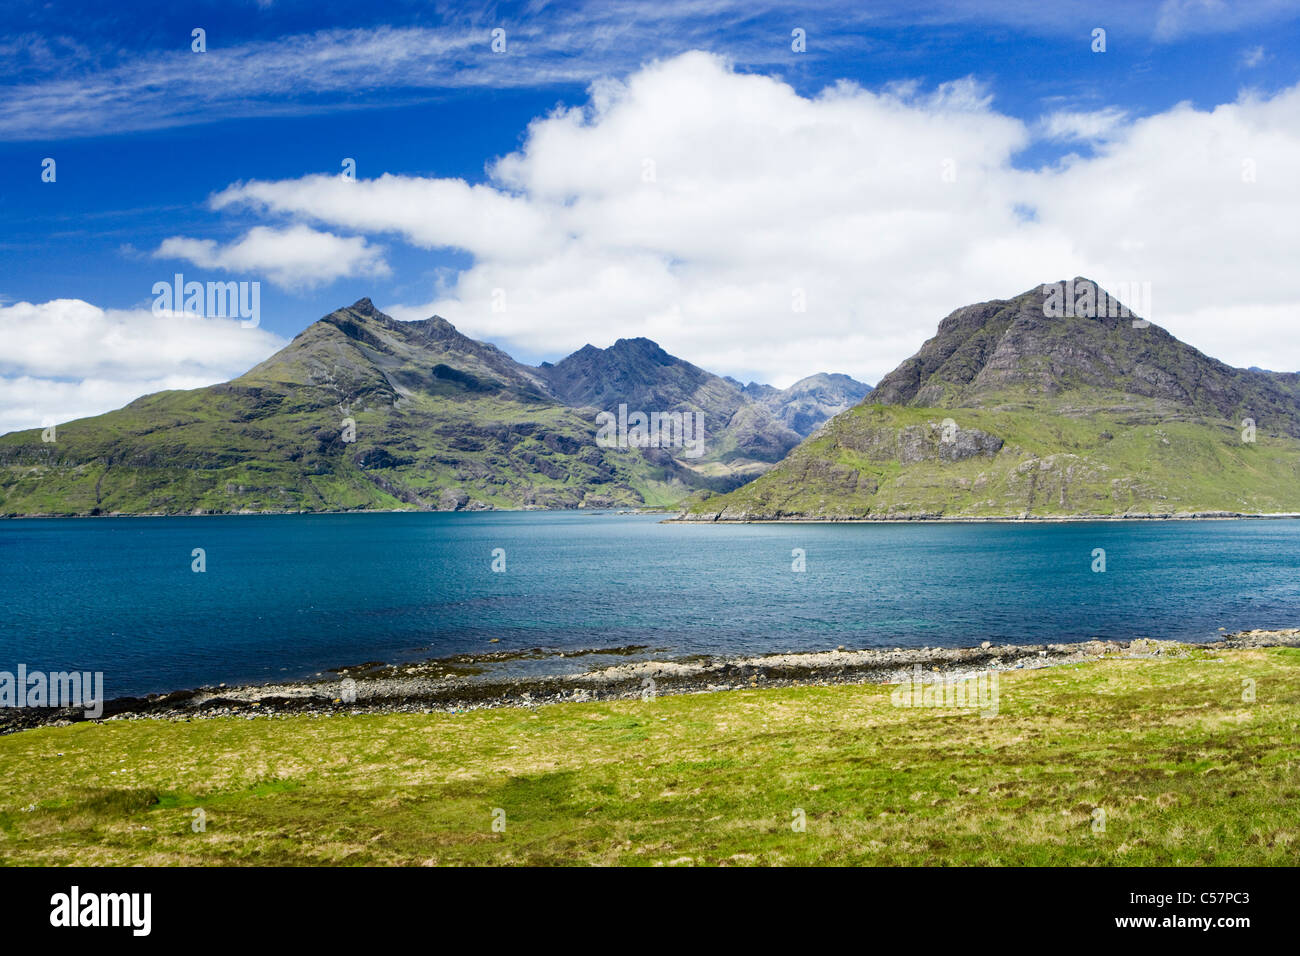 Cuillins over Loch Scavaig, Isle of Skye, Scotland, UK. Gars-bheinn on left, Sgurr na Stri on right. - Stock Image